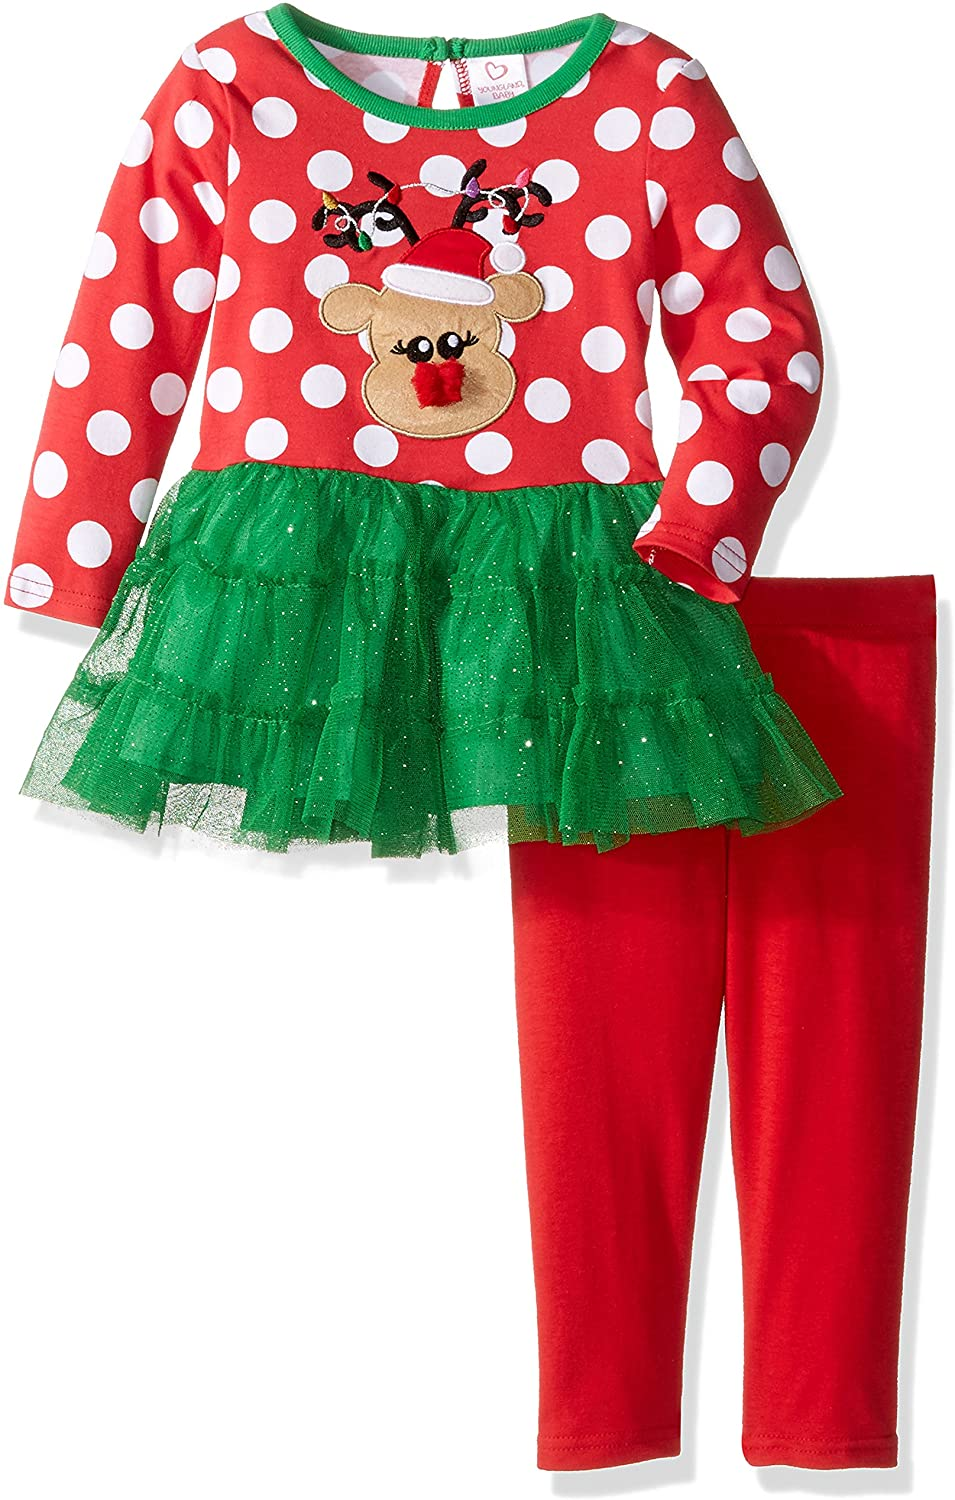 Youngland Baby Girls' Reindeer Tutu Dress and Knit Legging